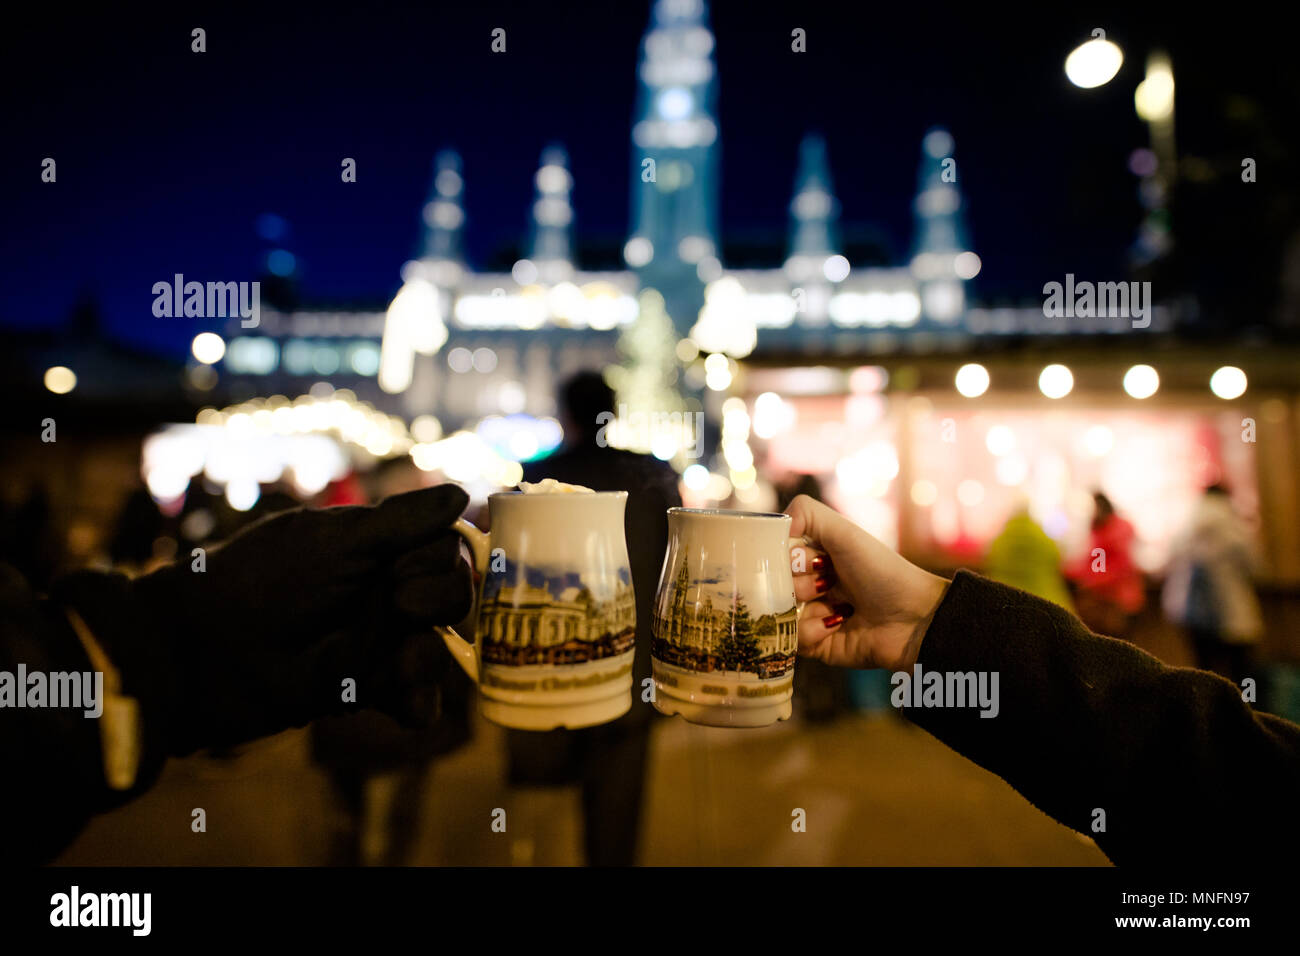 People holding traditional Punch cups in Vienna Christmas Market, December 2016 - Stock Image